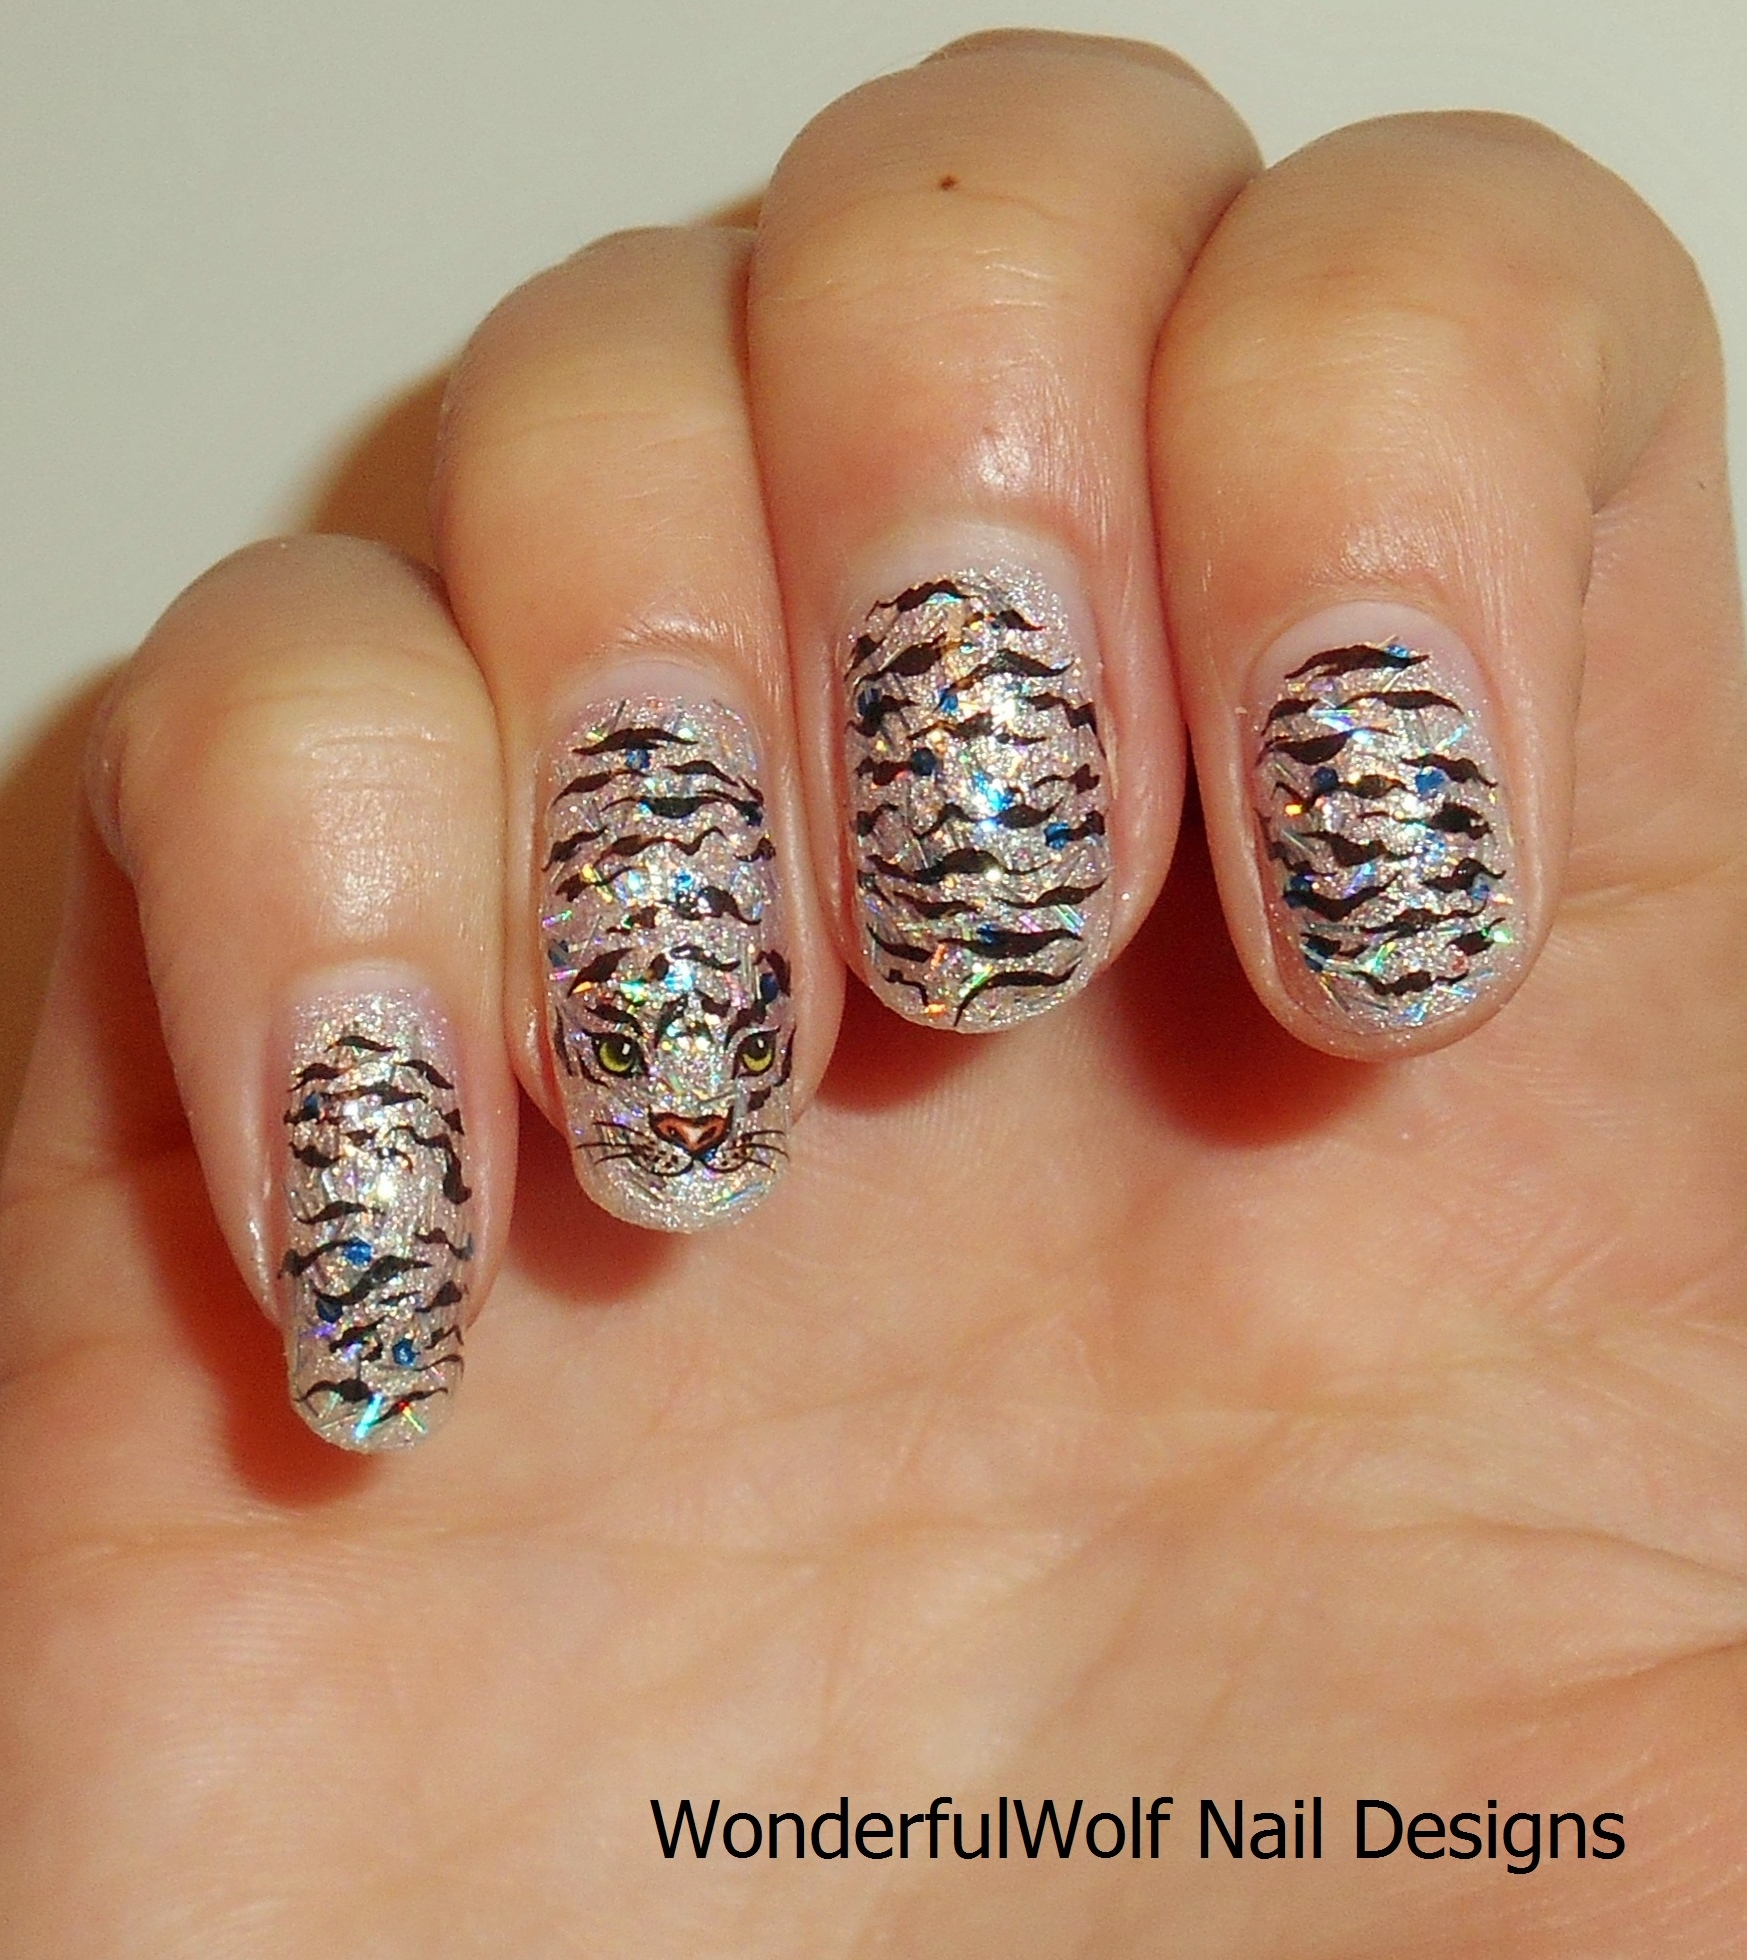 White Tiger Nail Art Wonderfulwolf